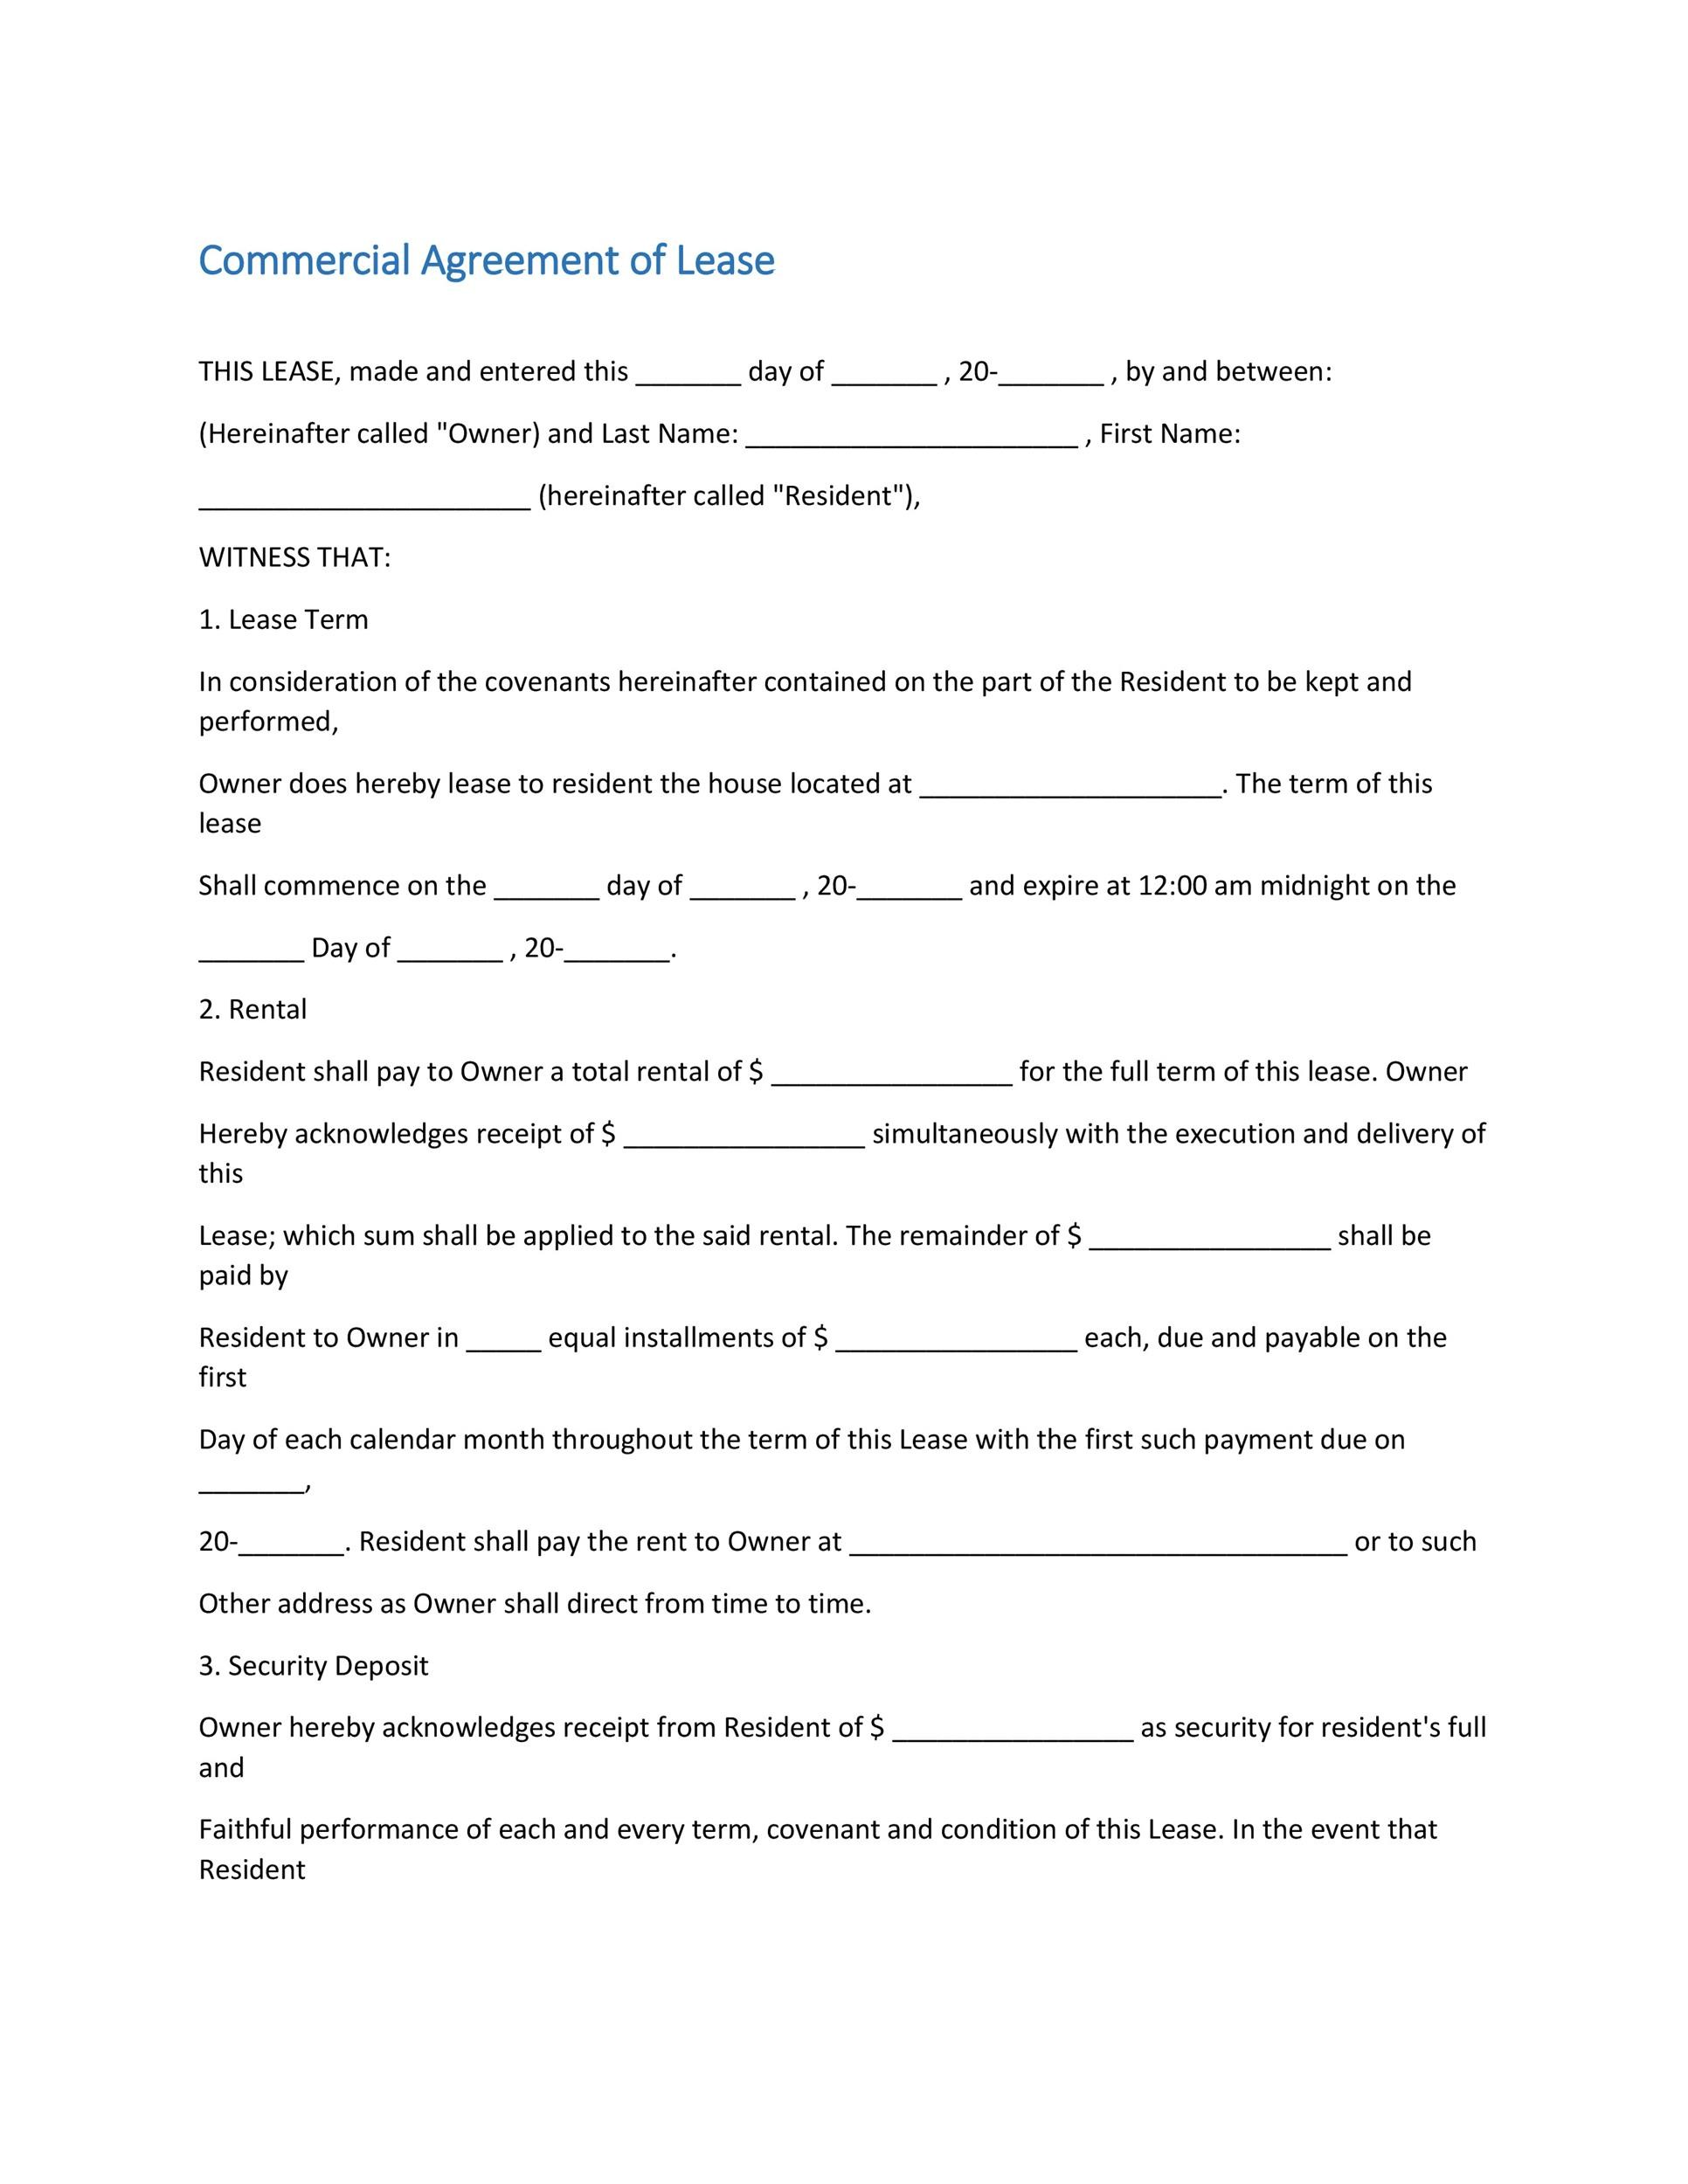 Free Commercial Lease Agreement Template 16